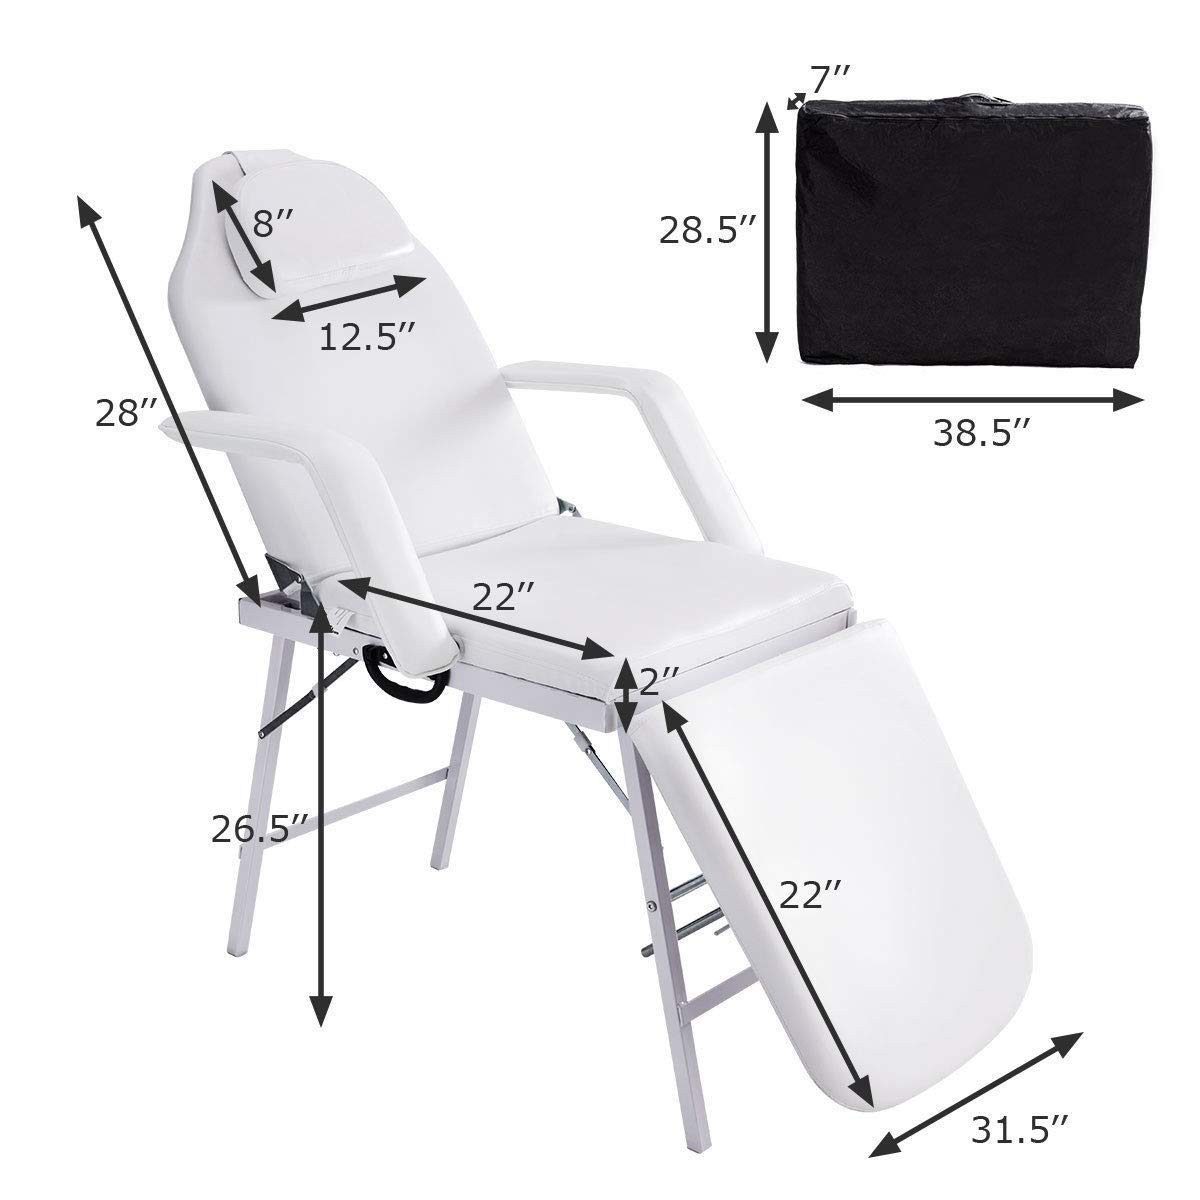 73''L Portable Adjustable Massage Table Chair Couch for Salon Beauty Physiotherapy Facial SPA Tattoo Household by SAFEPLUS (Image #7)